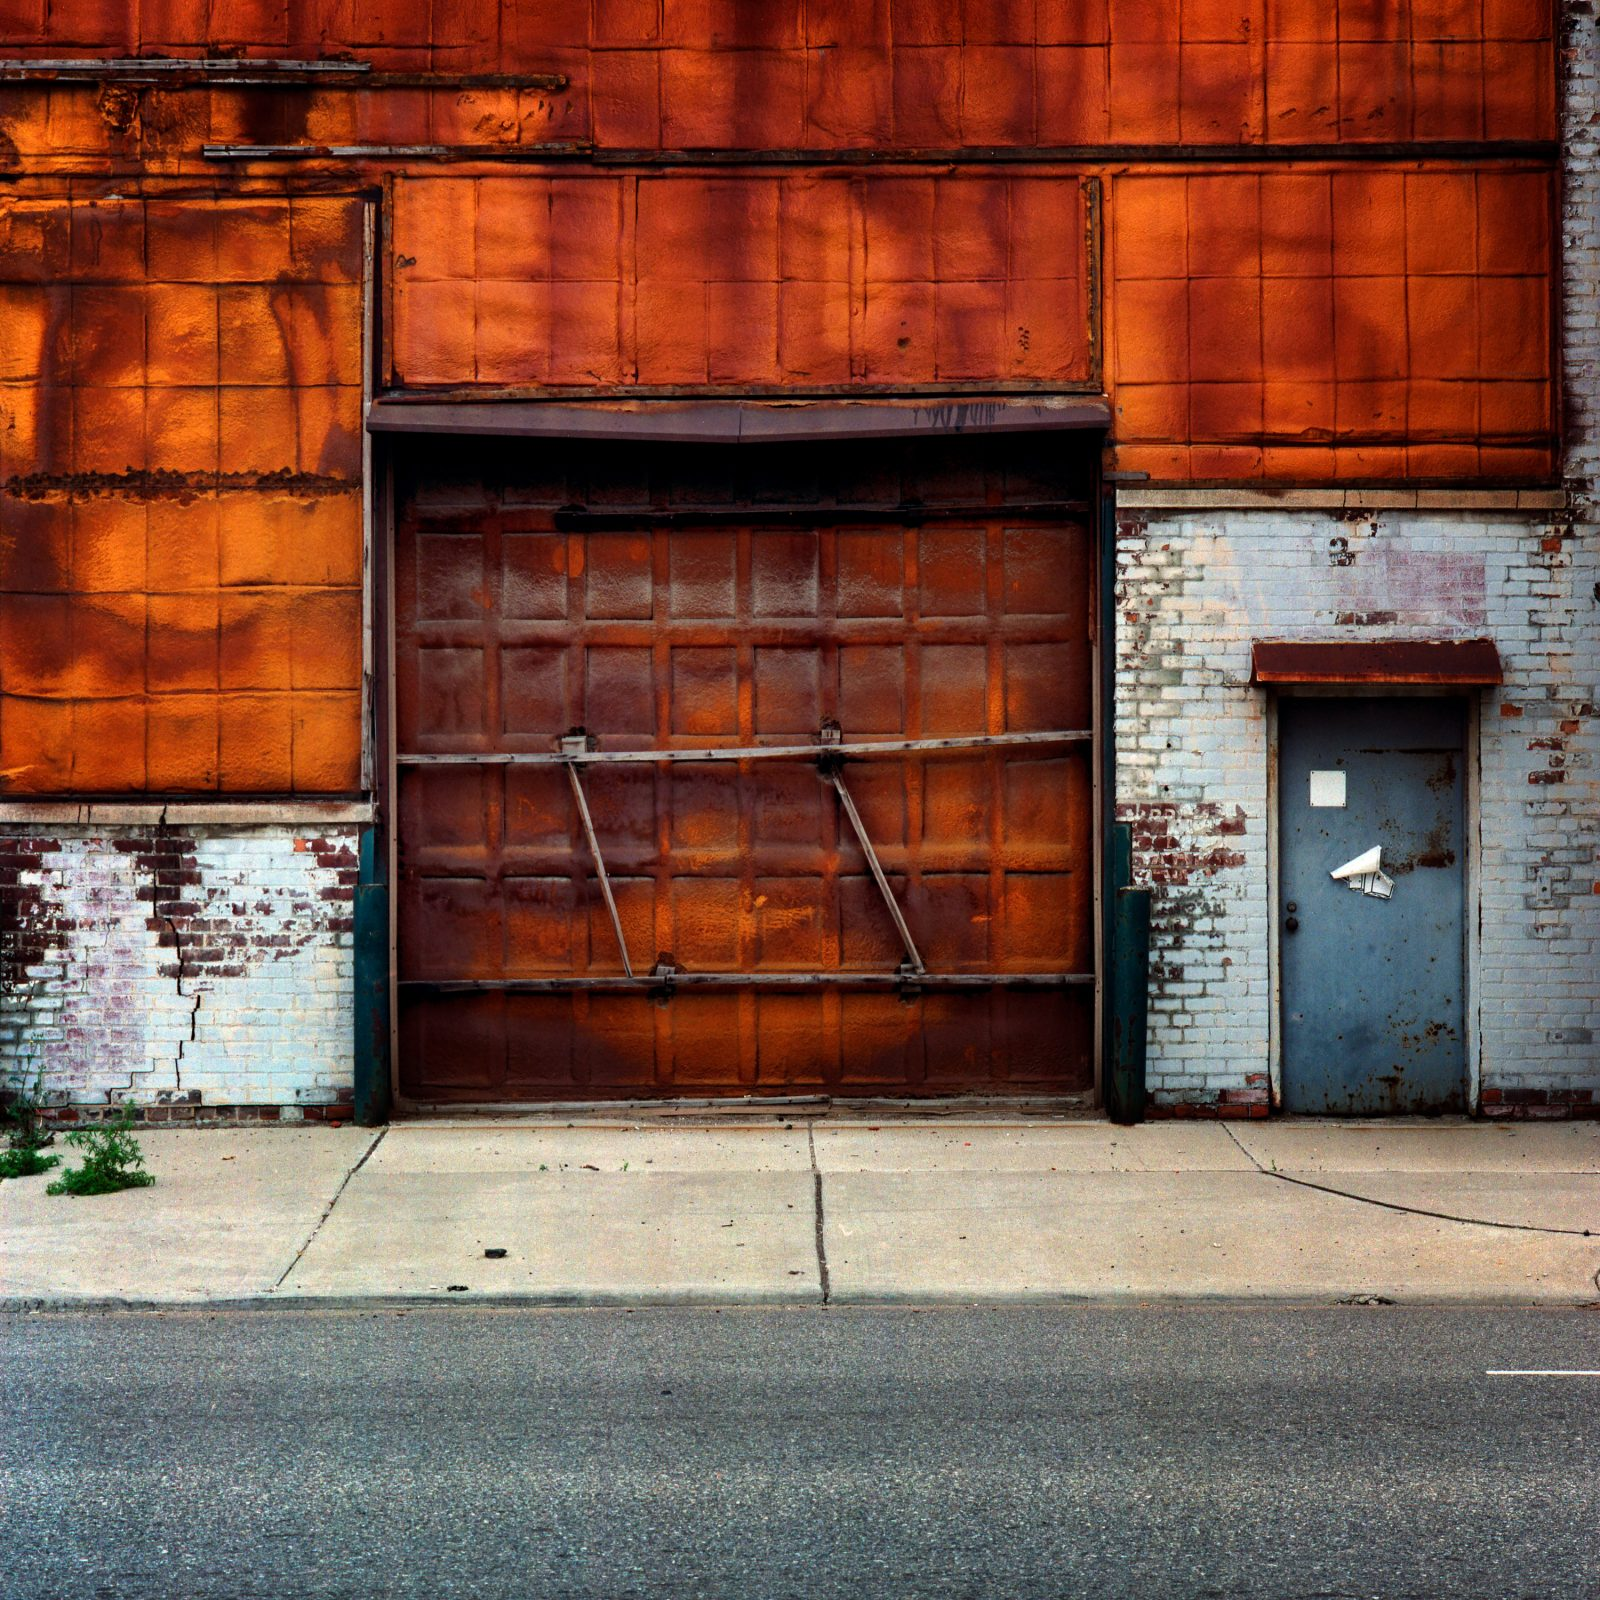 Orange wall and door. Detroit.